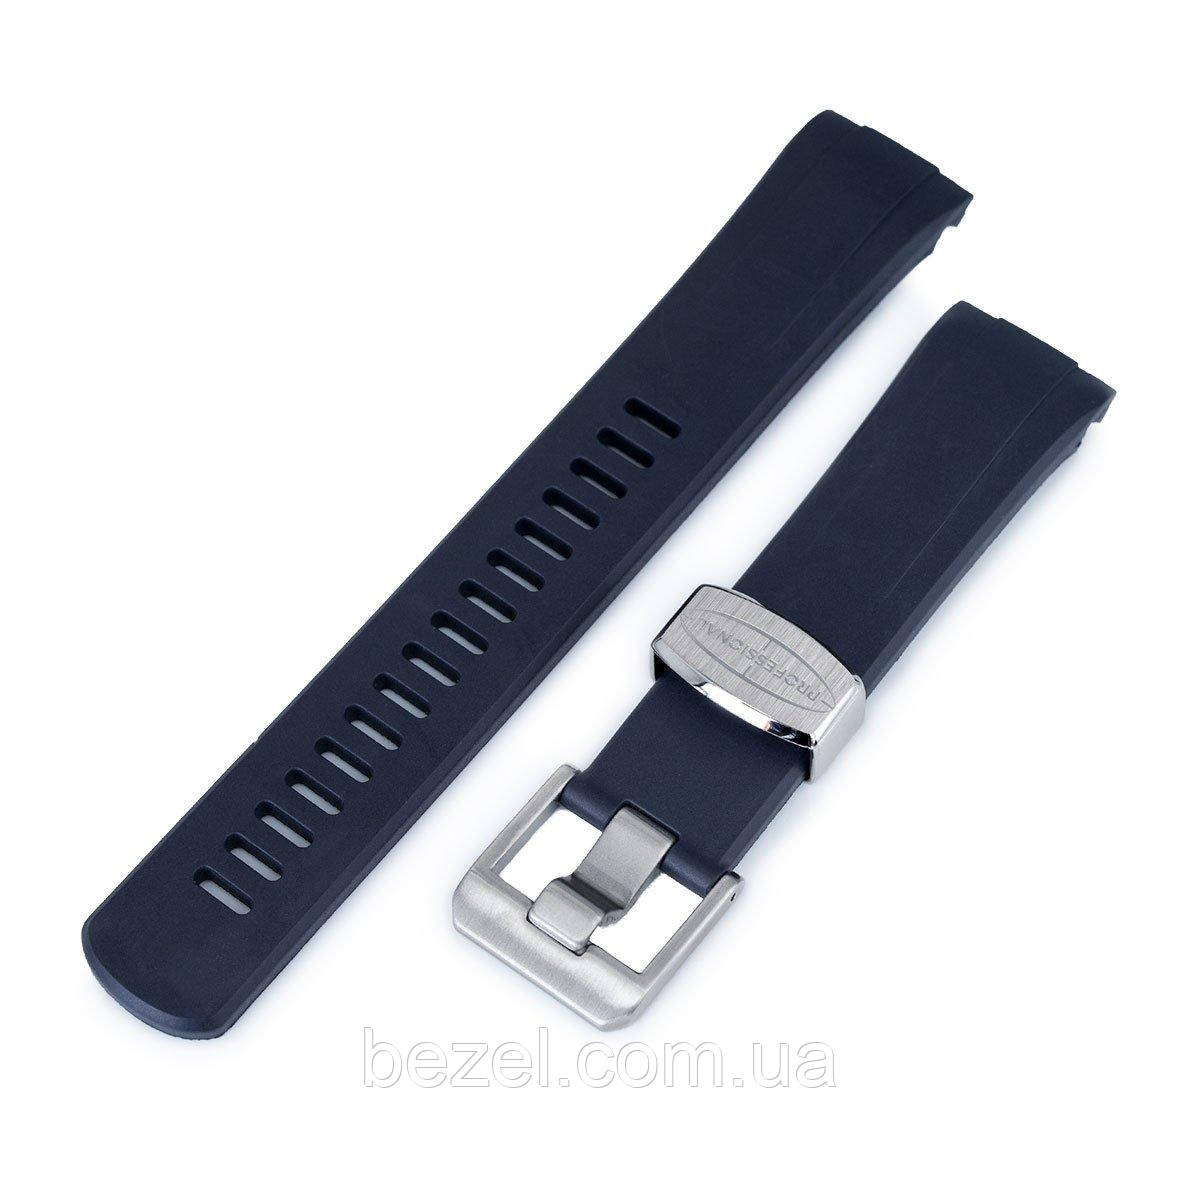 22mm Crafter Blue - Navy Blue Rubber Curved Lug Watch Band for Seiko Turtle SRP777